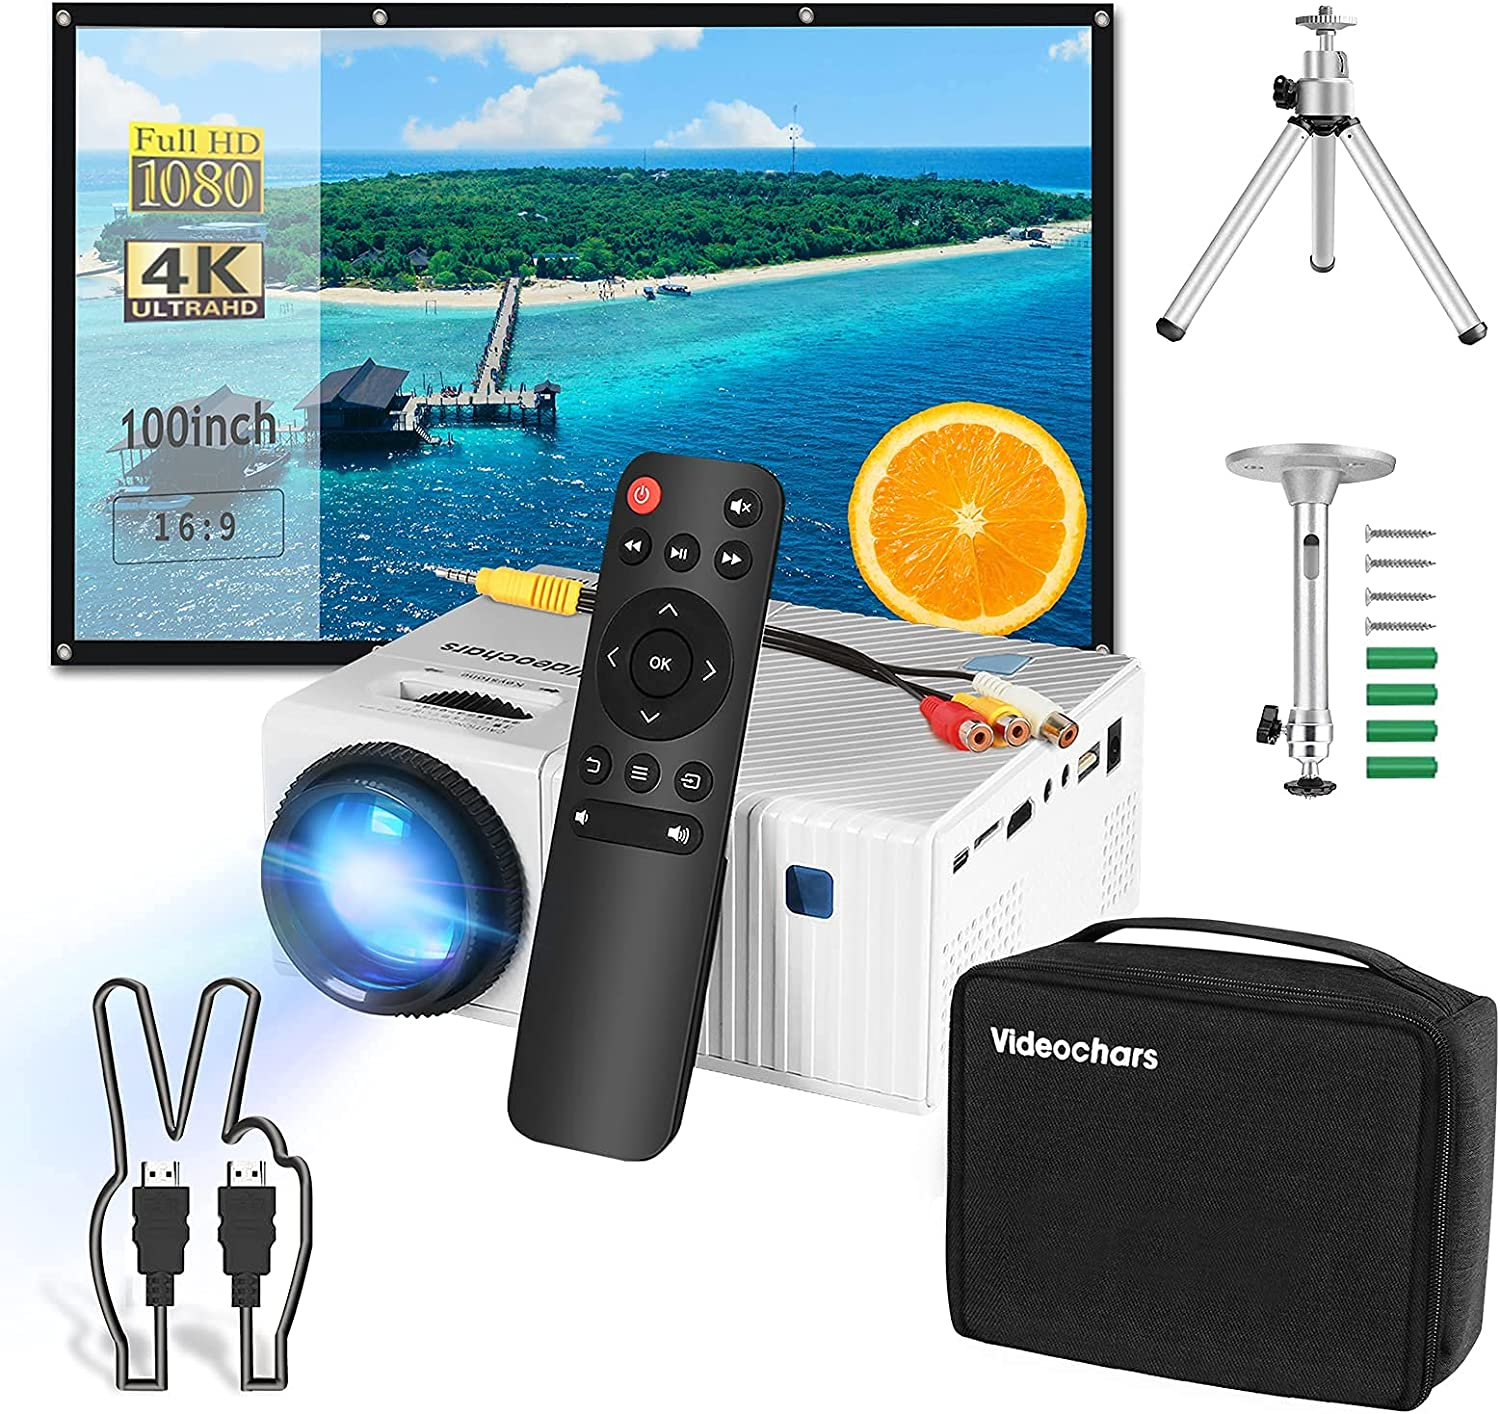 7 in 1 Home Theater Set,Compact Size Native 1080P Projector + 100inch Projector Screen + Tripod Stand + Ceiling Mount + HDMI Cable + Portable Bag + Remote Controller